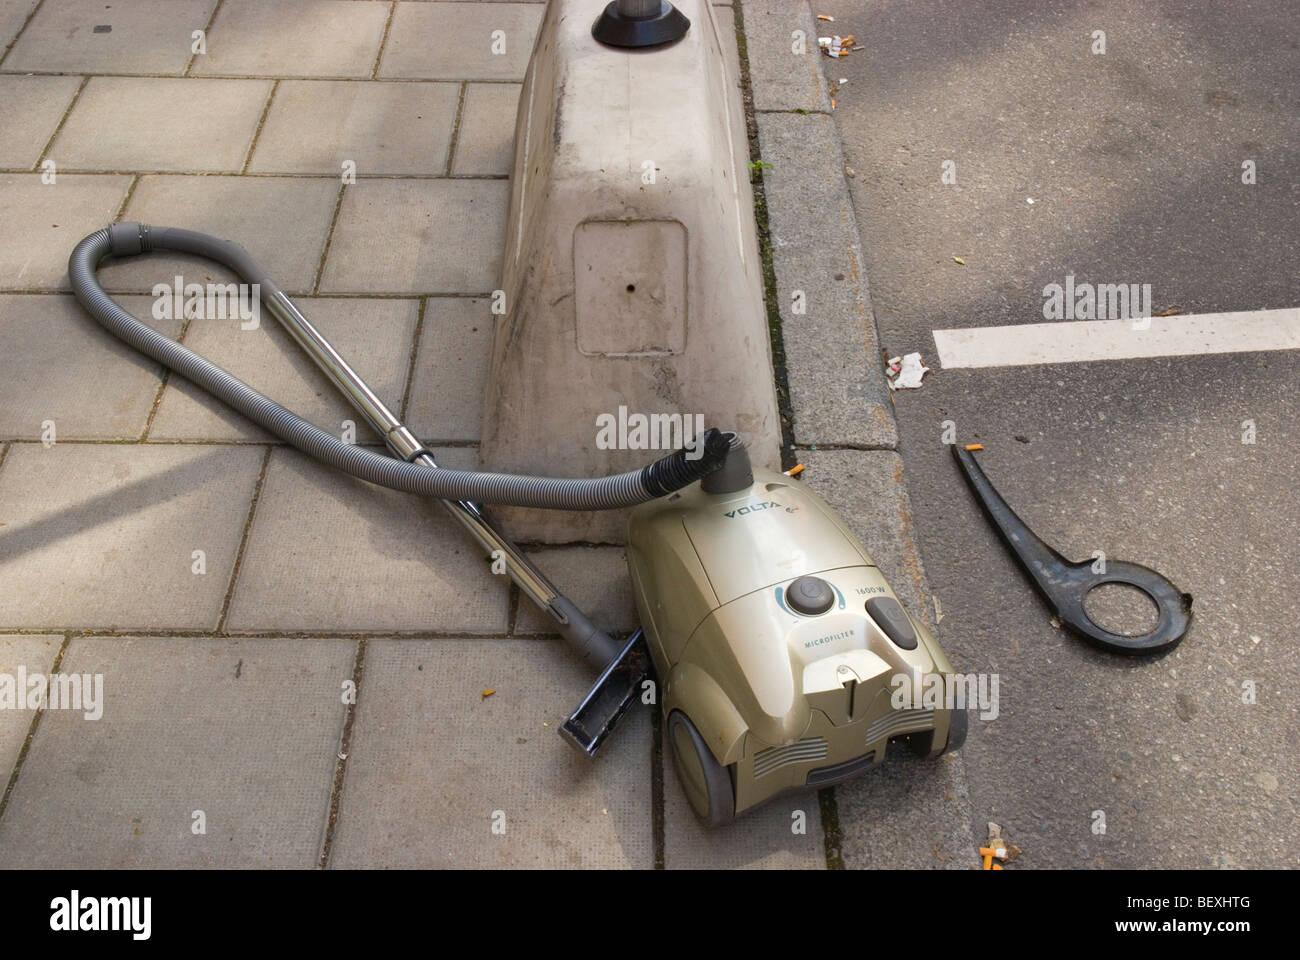 Vacuum Cleaner Hoover Stock Photos Amp Vacuum Cleaner Hoover